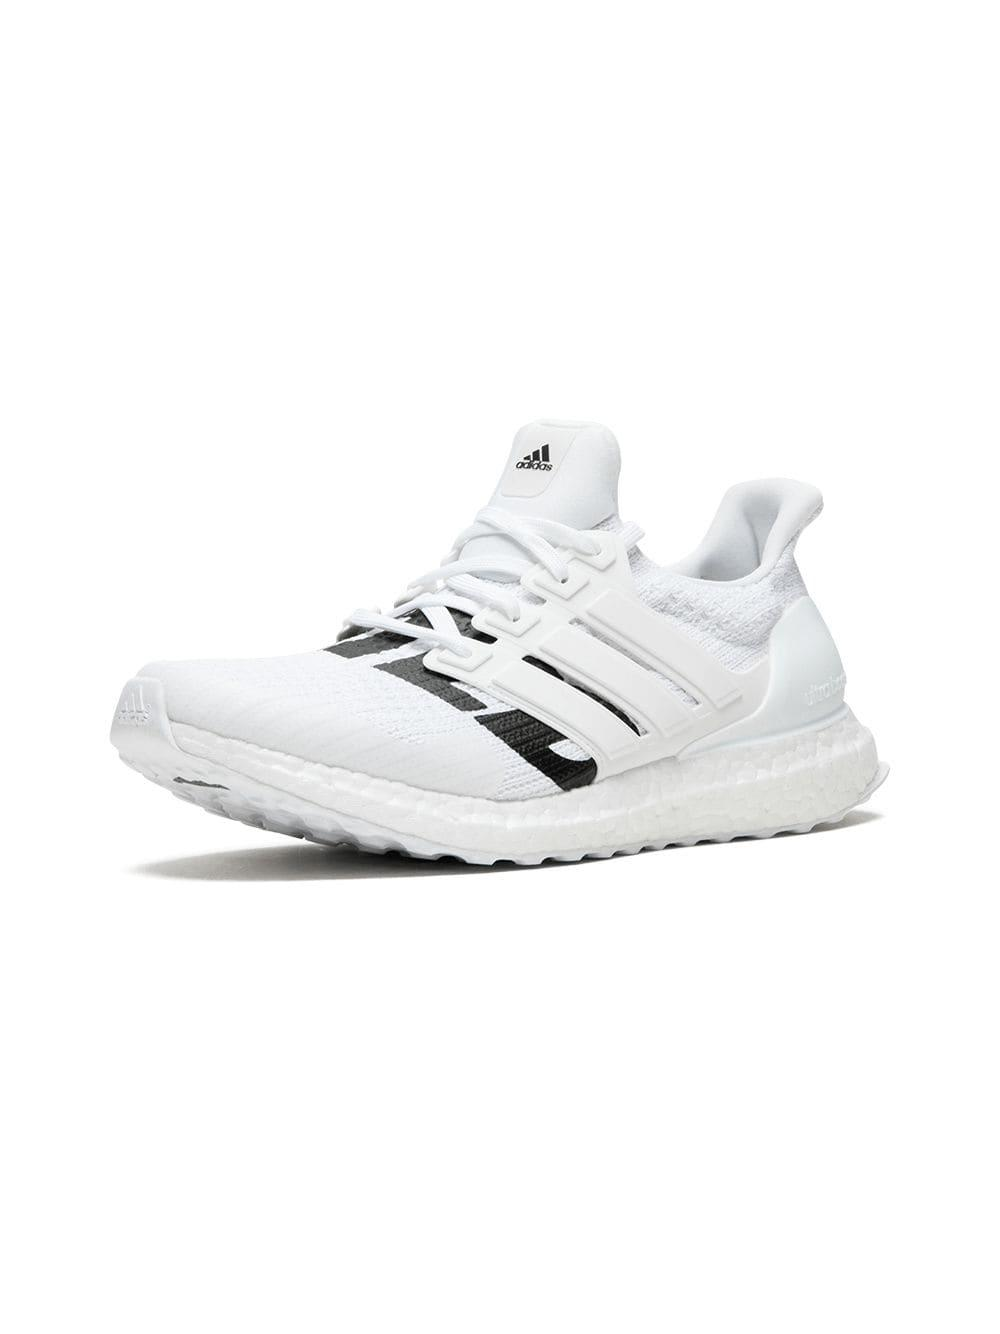 f477095fbfeb8 Adidas Ultraboost Undftd Sneakers in White for Men - Lyst